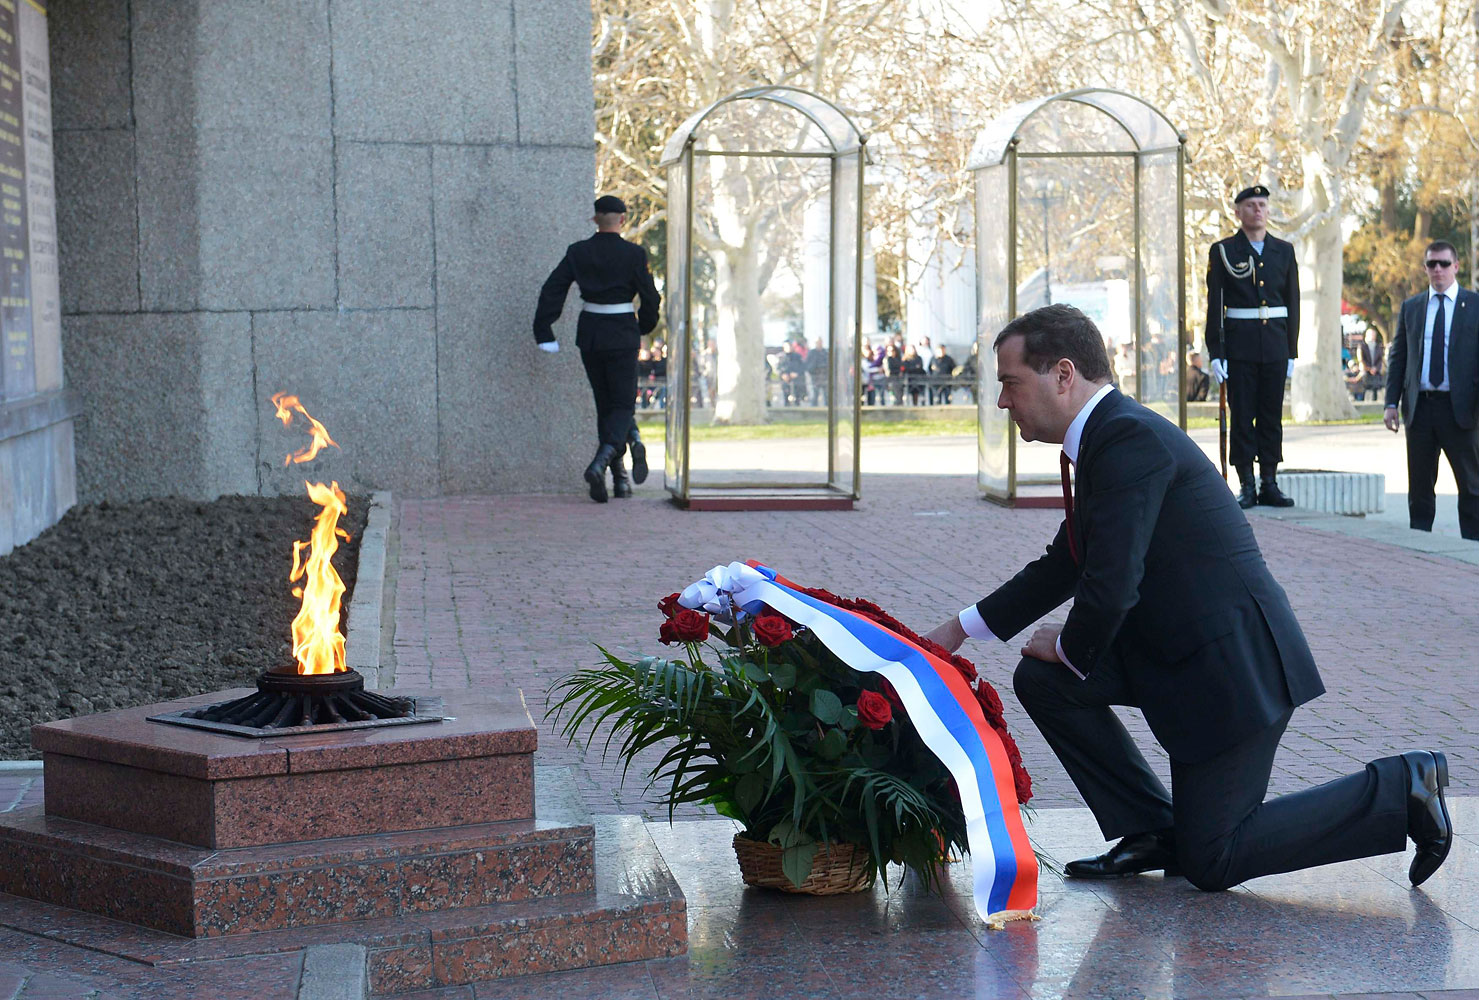 Russia's Prime Minister Dmitry Medvedev takes part in a wreath laying ceremony at the World War Two Memorial to Heroic Defence of Sevastopol in Sevastopol, March 31, 2014.